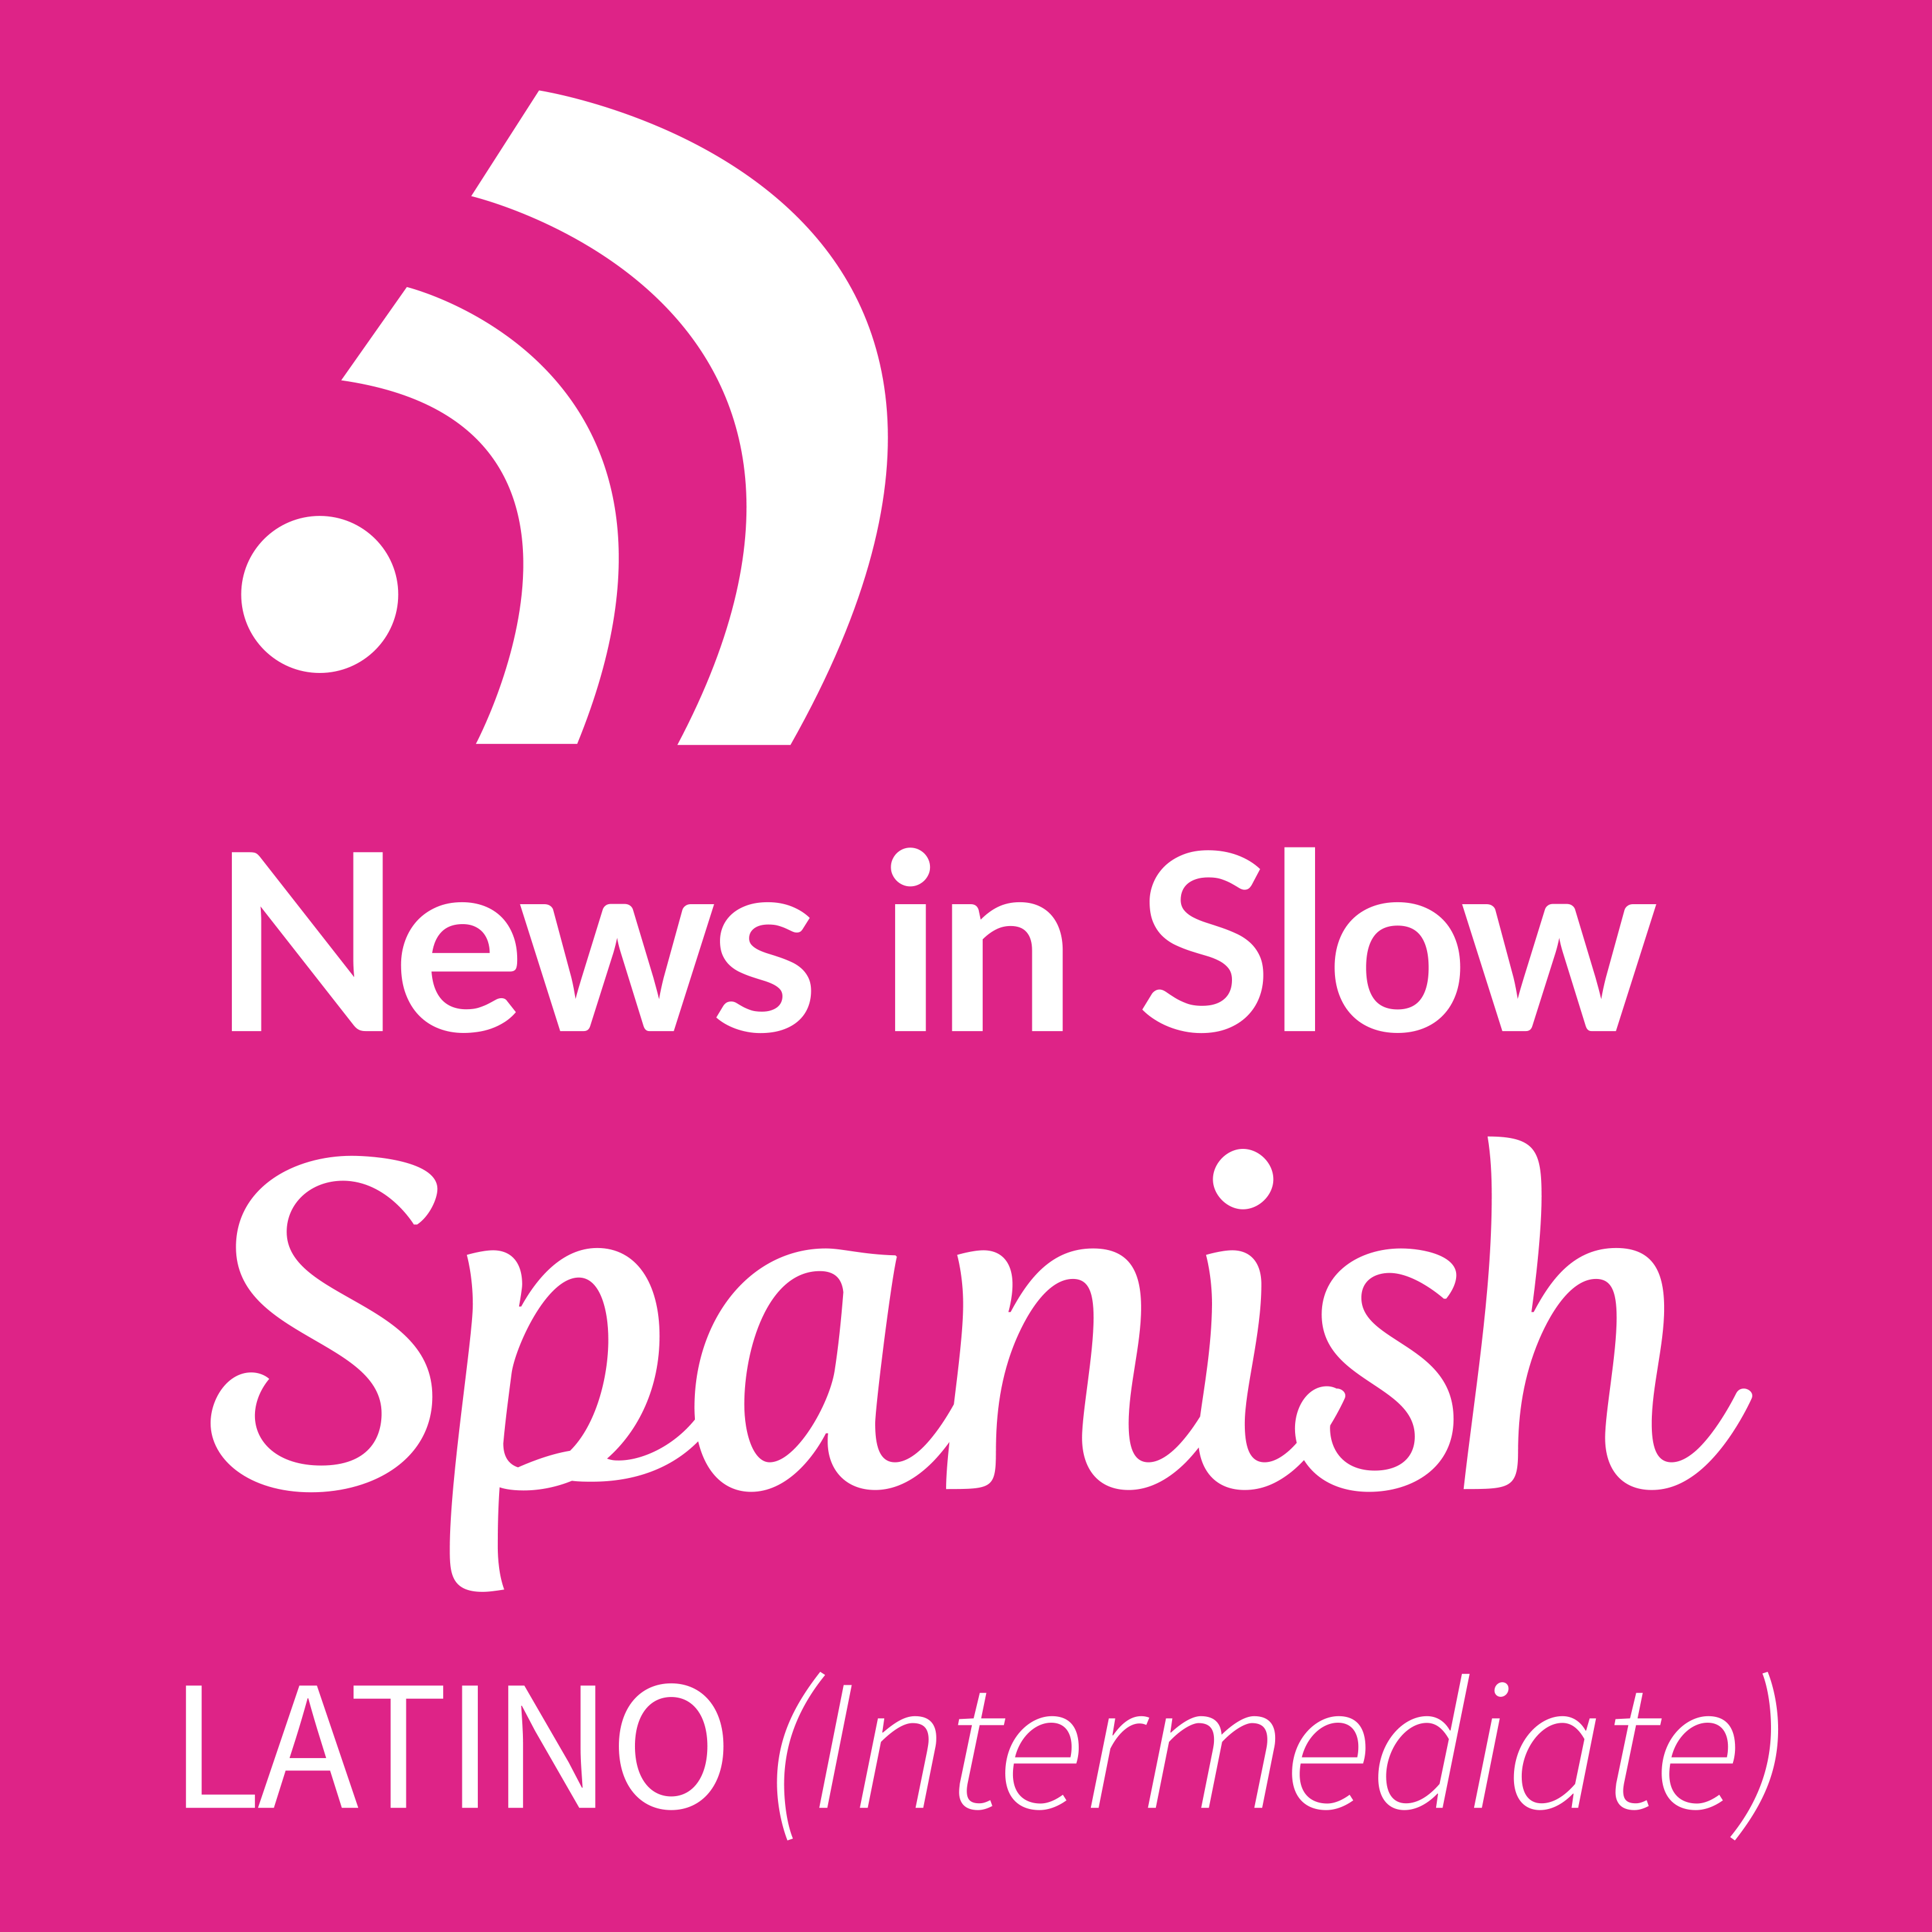 News in Slow Spanish Latino - # 168 - Language learning in the context of current events